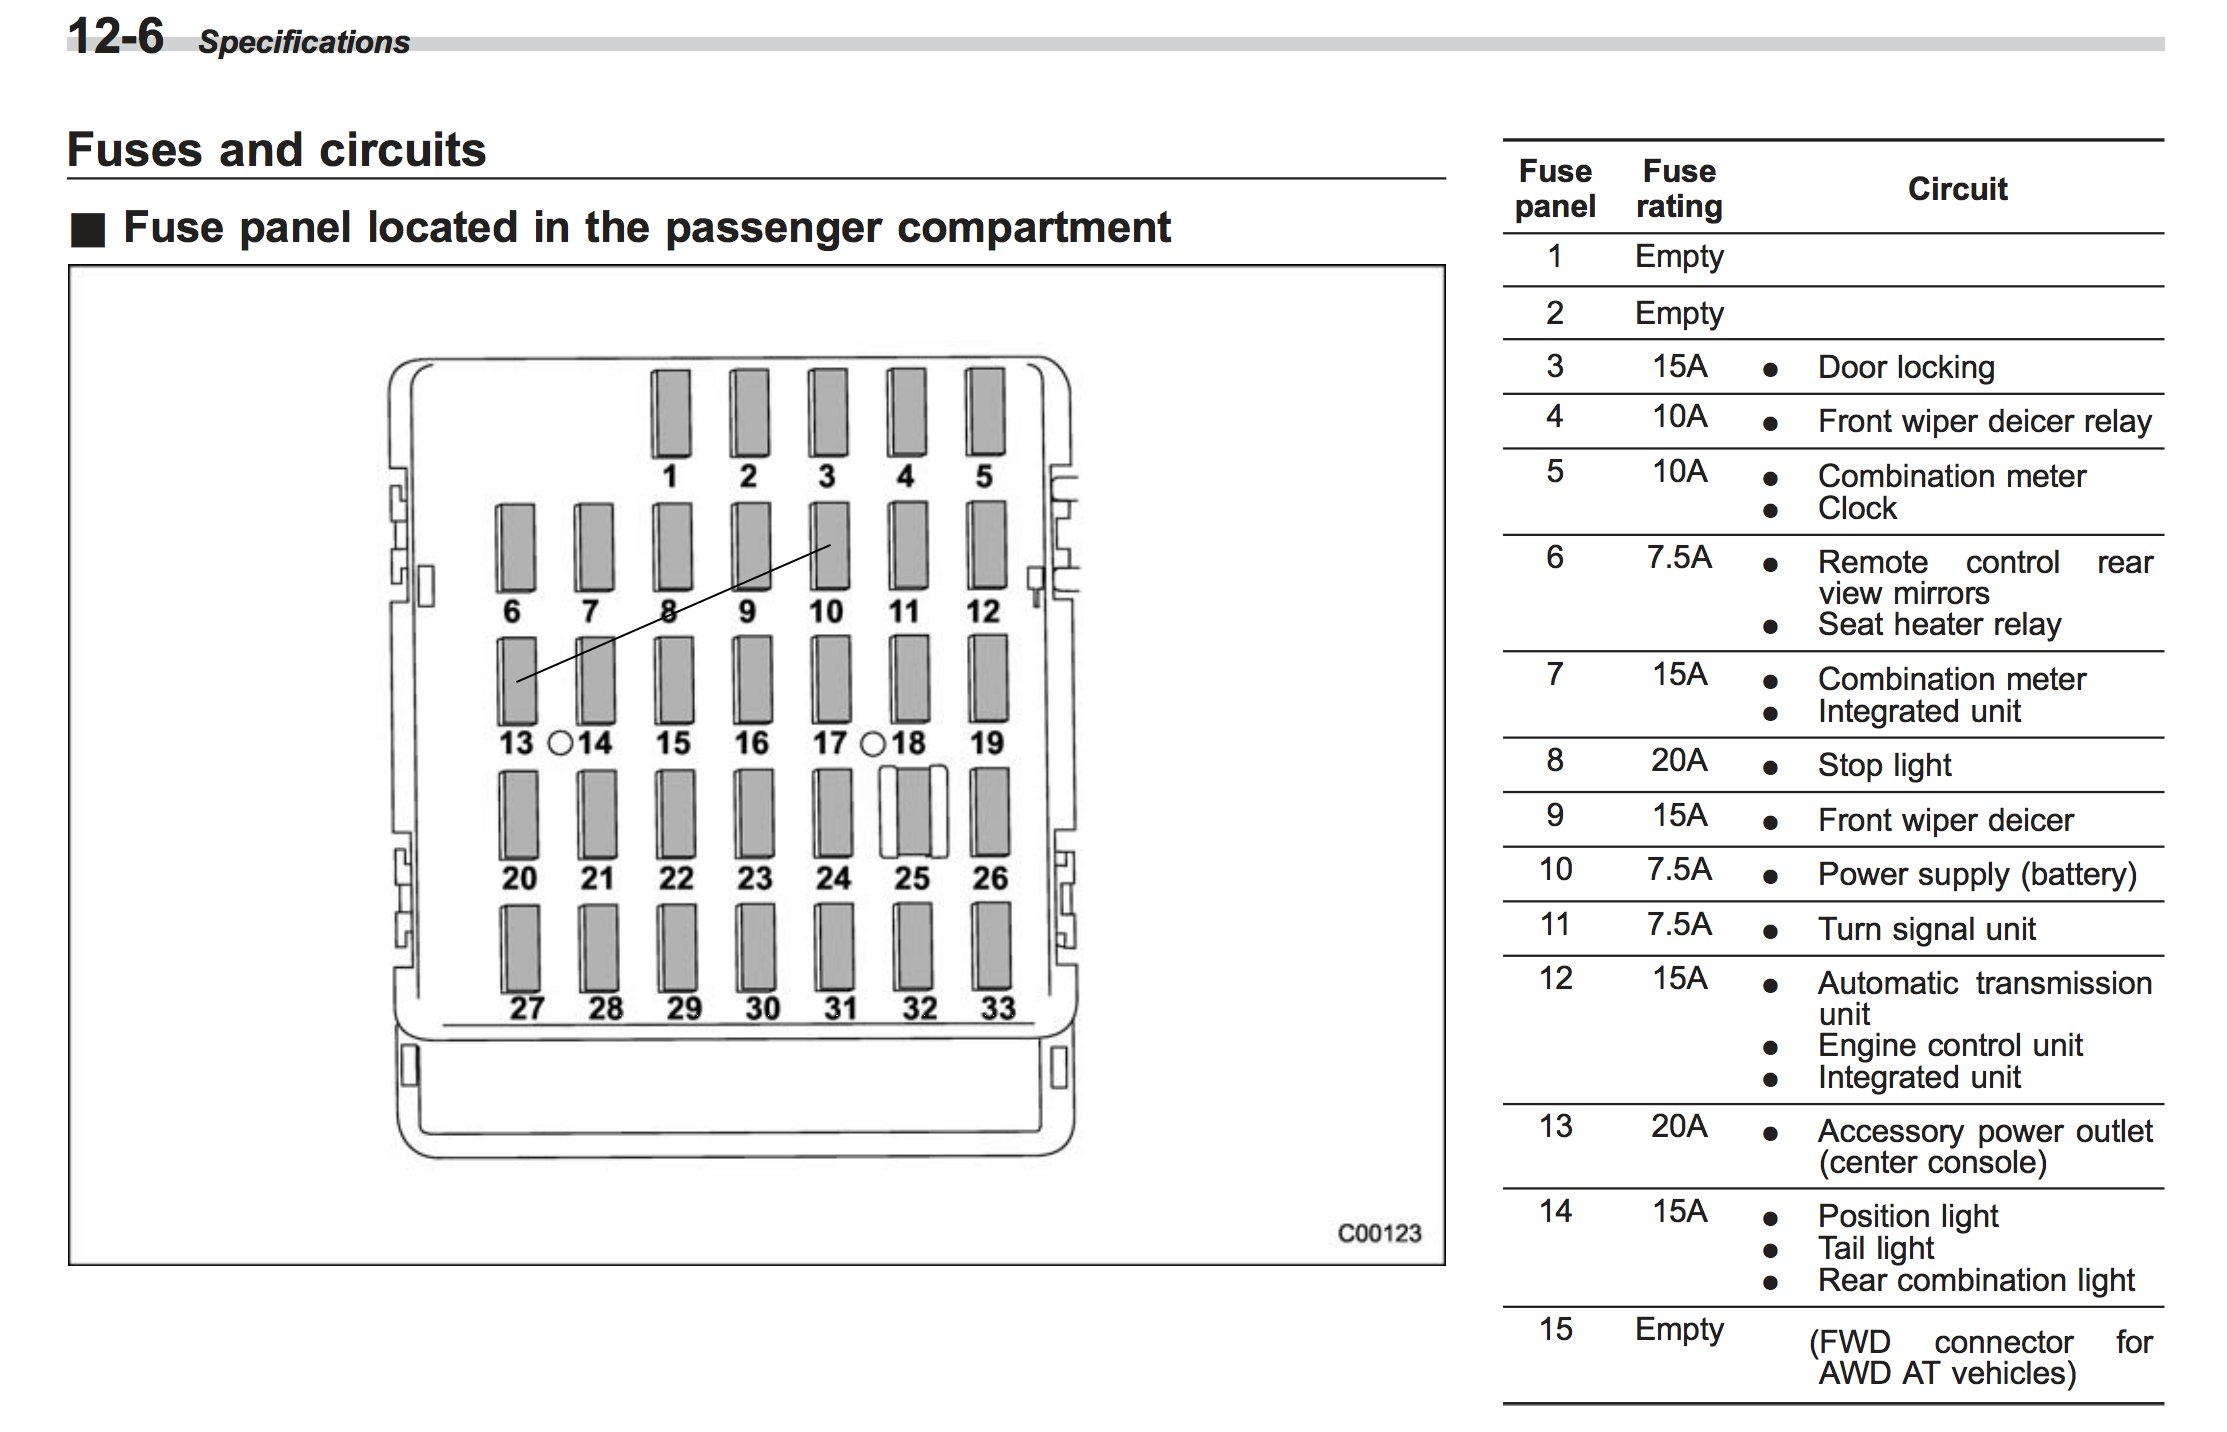 Fuse Box On Subaru Forester Wiring Diagram Schematics 2011 Nissan Rogue For 2009 Books Of U2022 Fan Belt